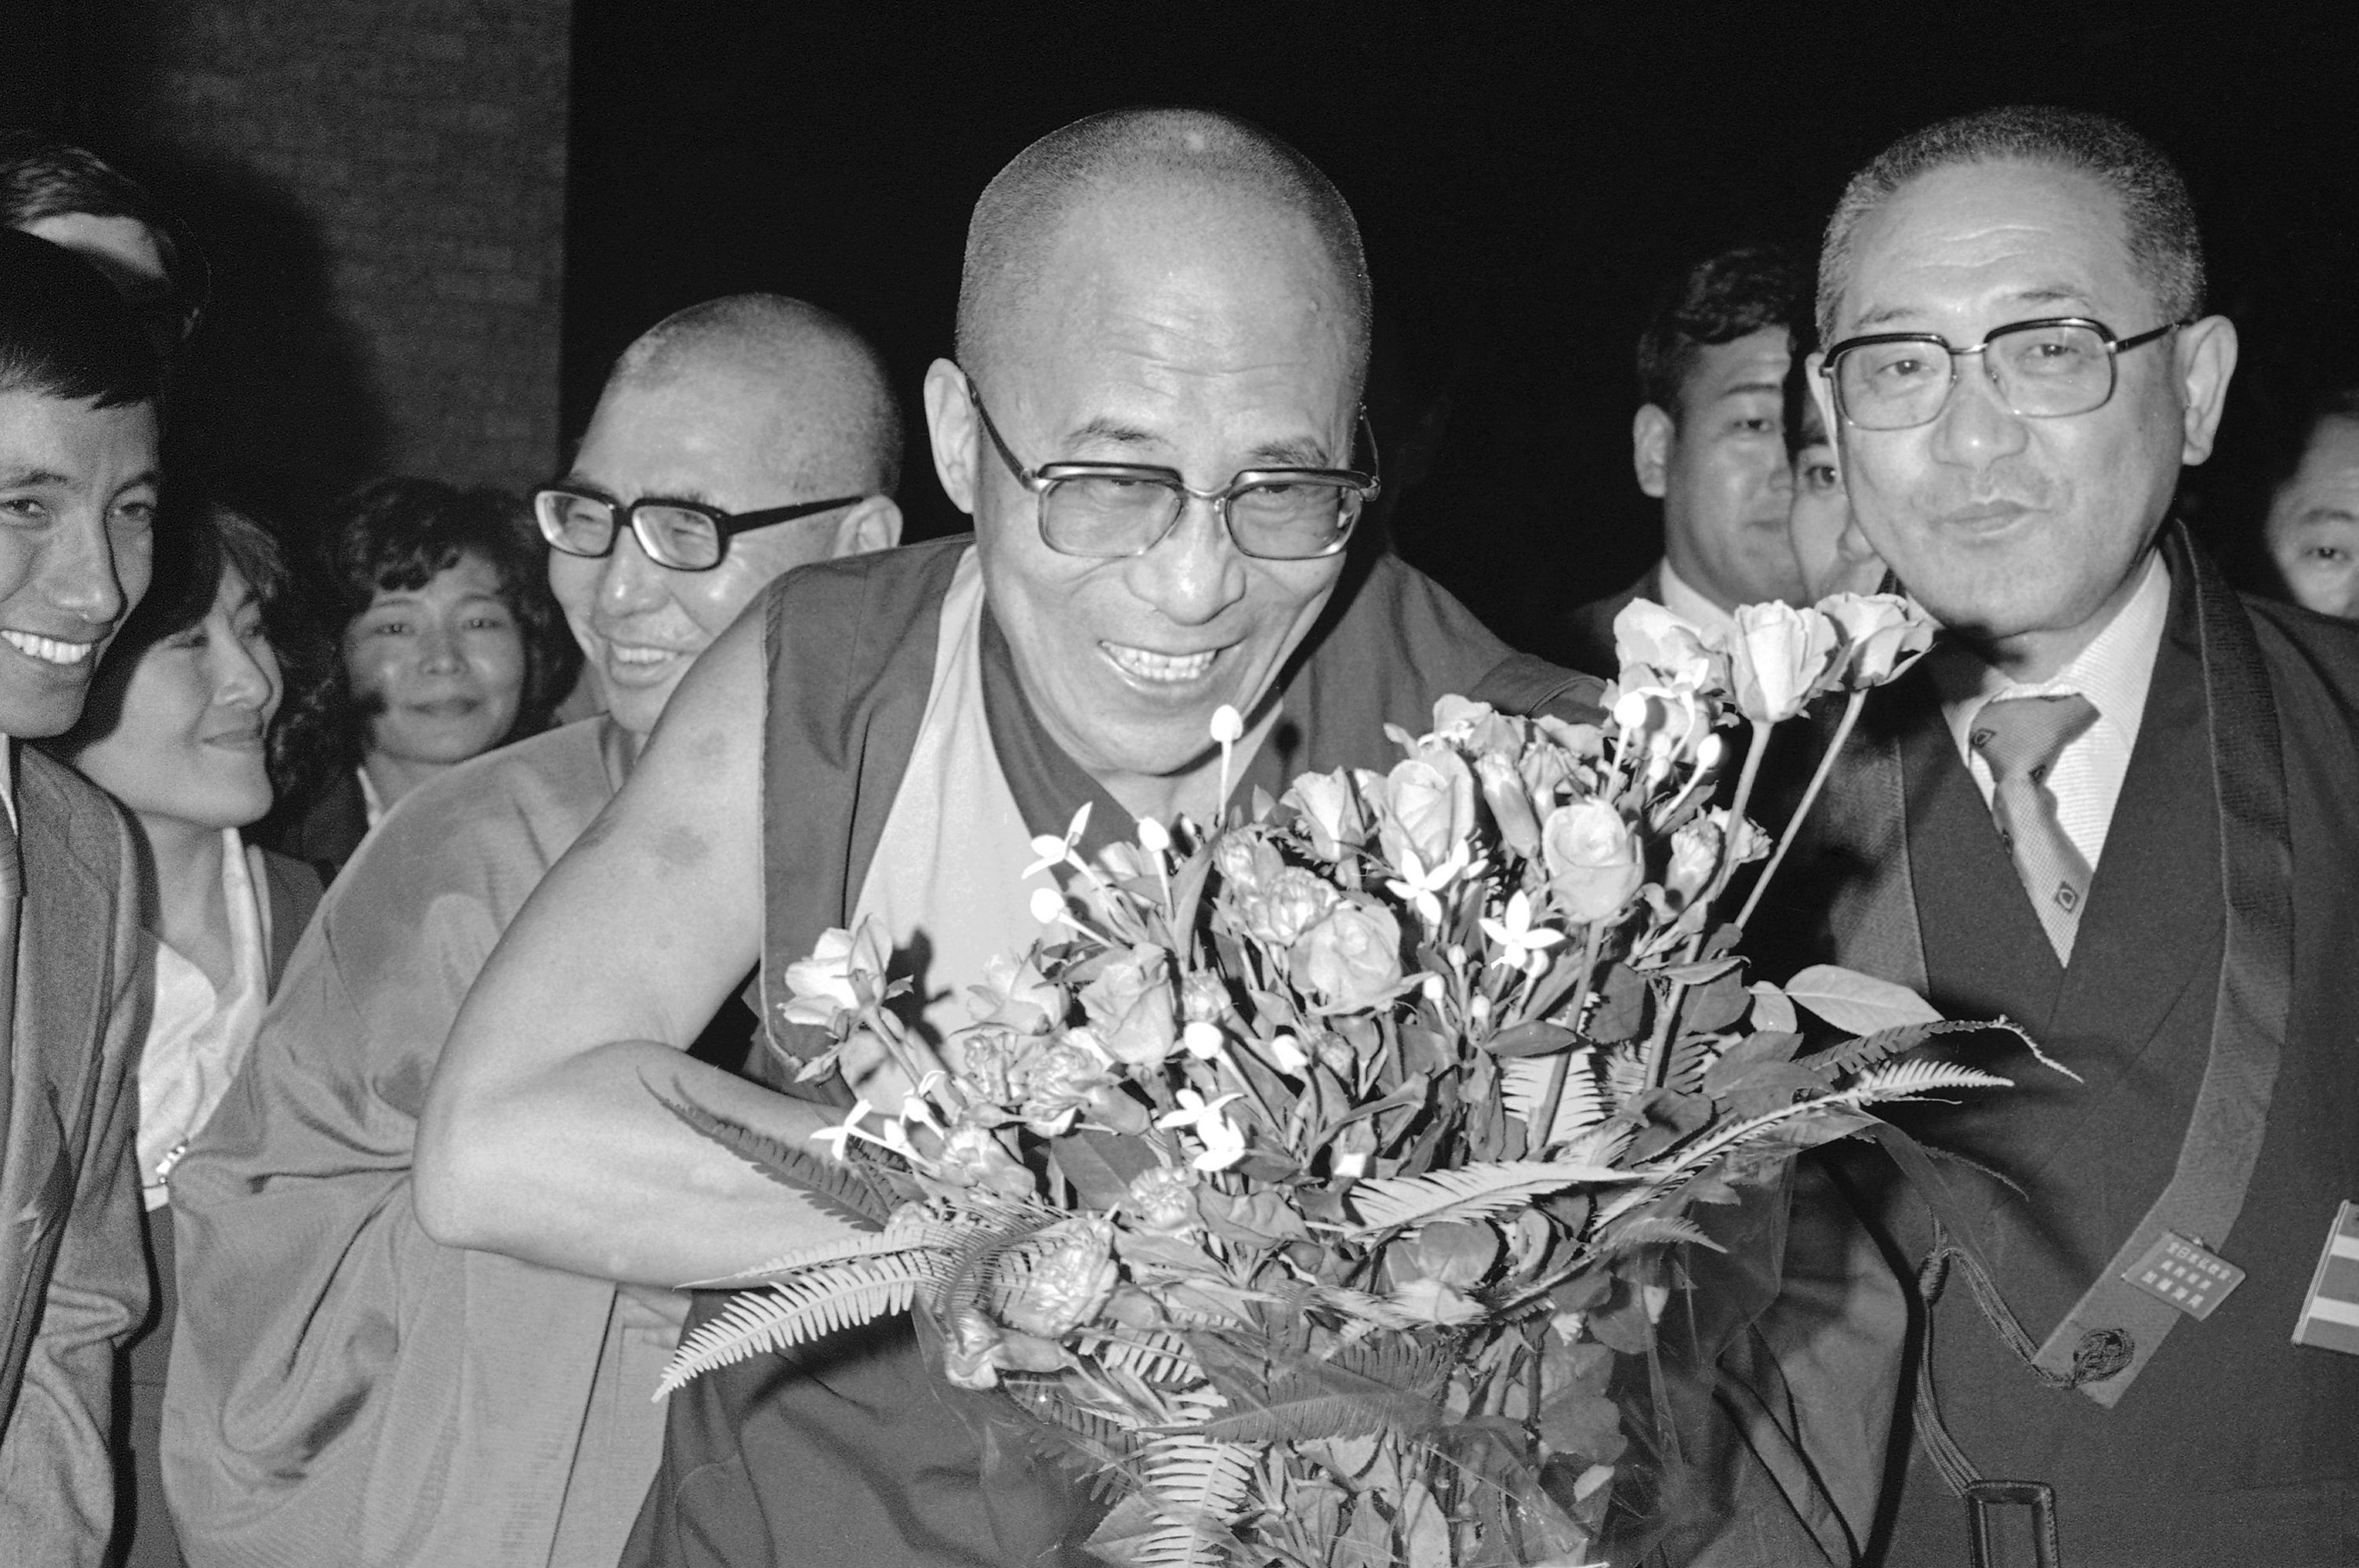 The Dalai Lama dedicated a new Tibetan Buddhist gompa (temple) in the Tibetan refugee school center in Mussorie, 125 miles north of New Delhi on April 23, 1964